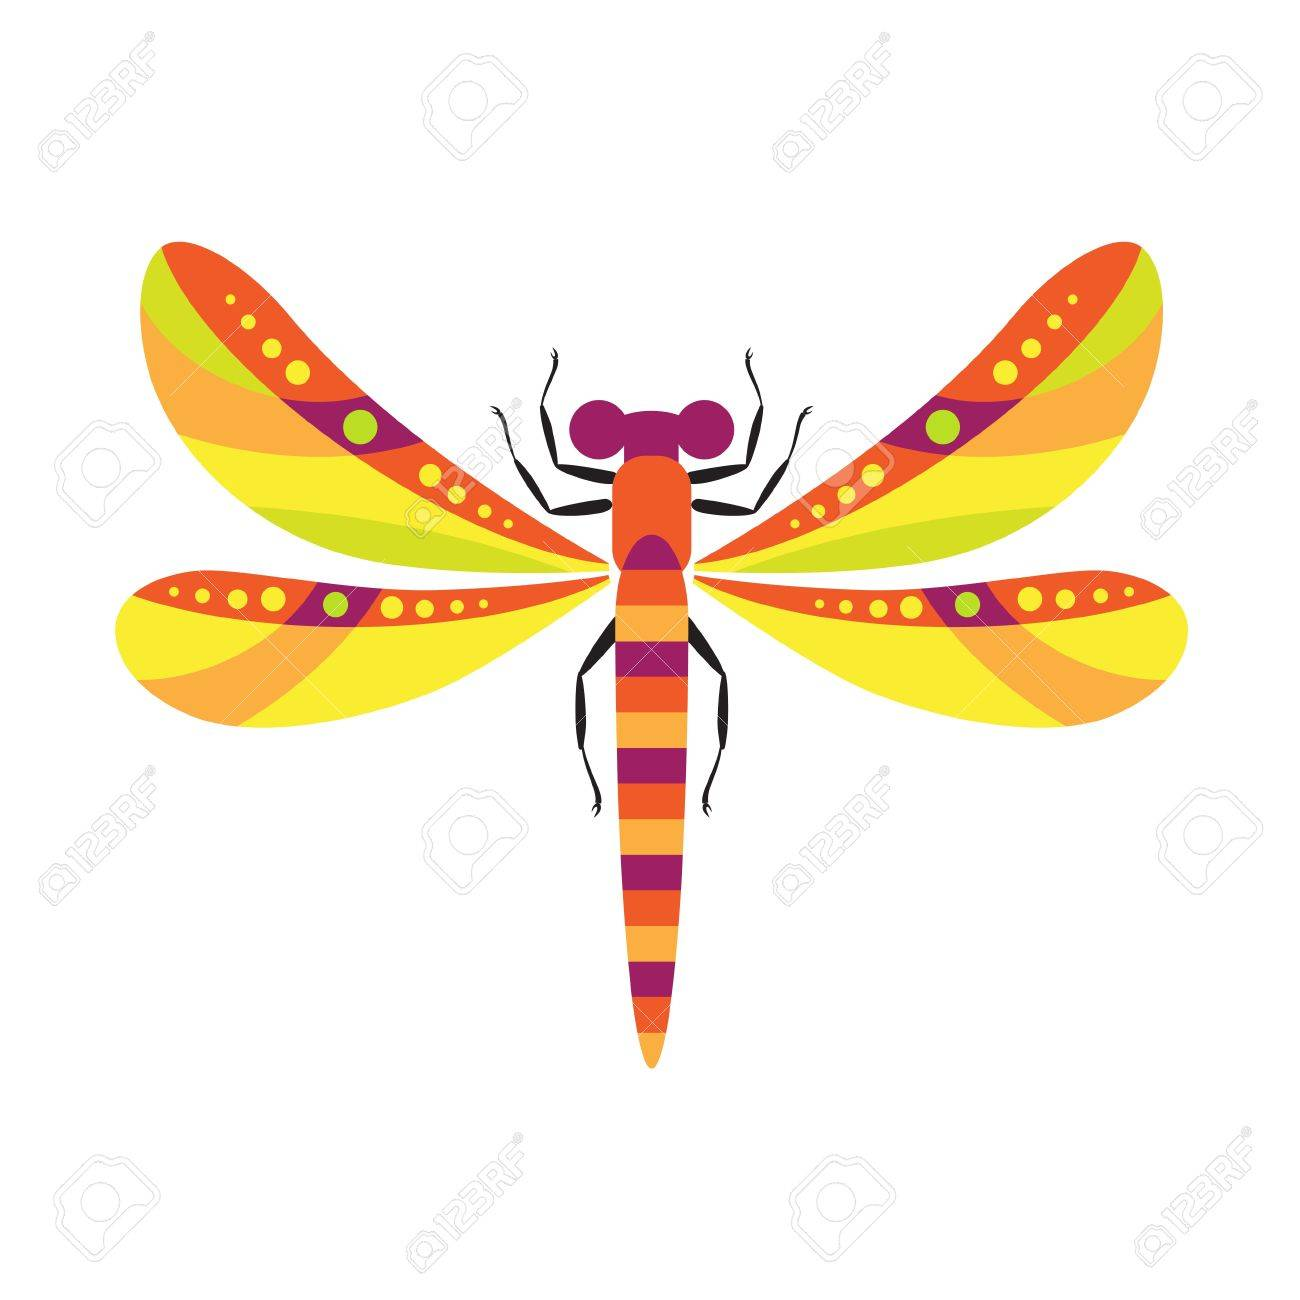 decorative stylized image of dragonfly on family of insects